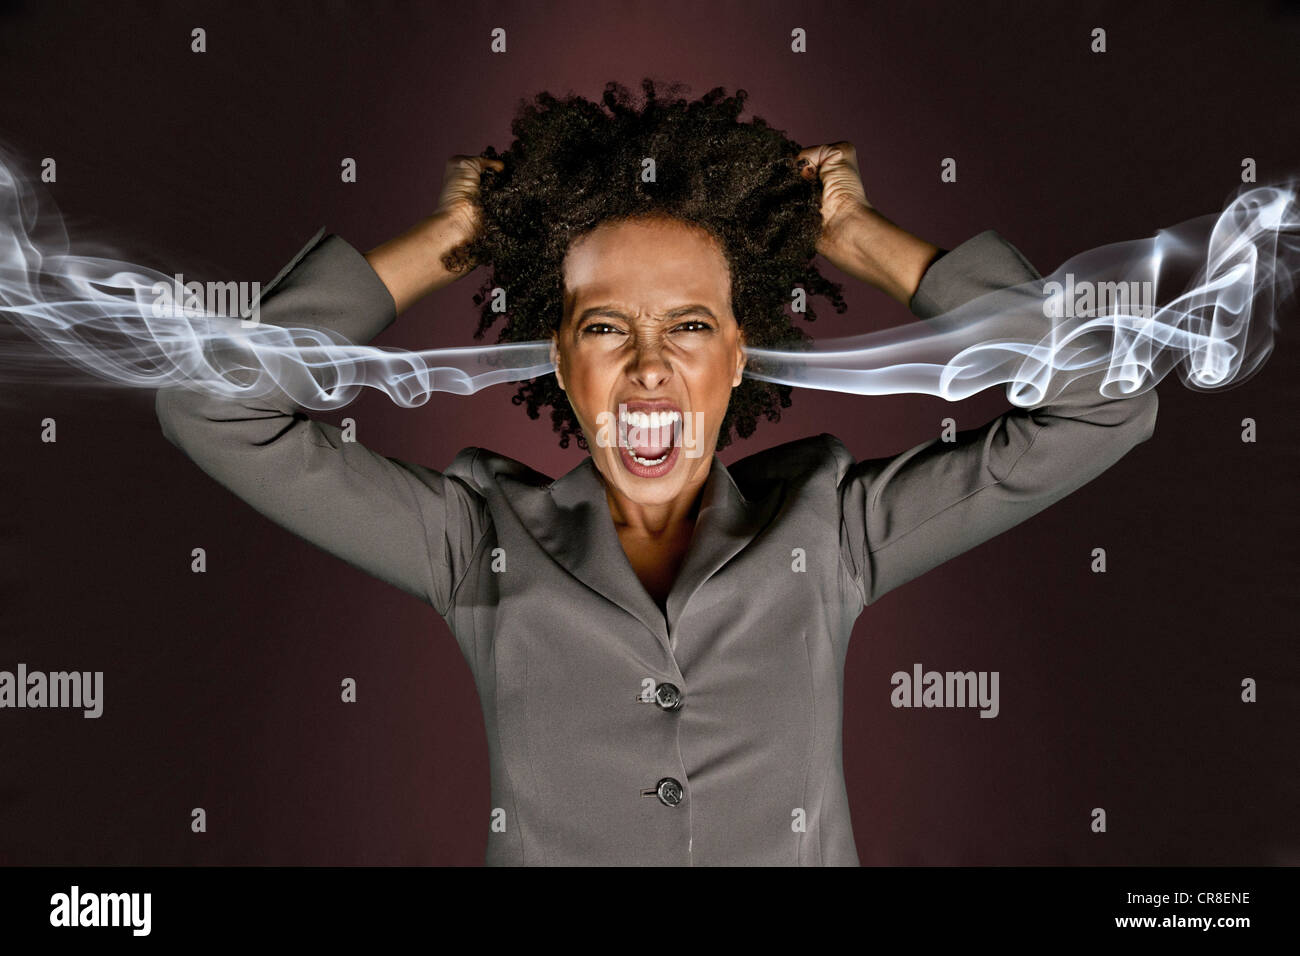 Frustrated woman with smoke coming from ears - Stock Image